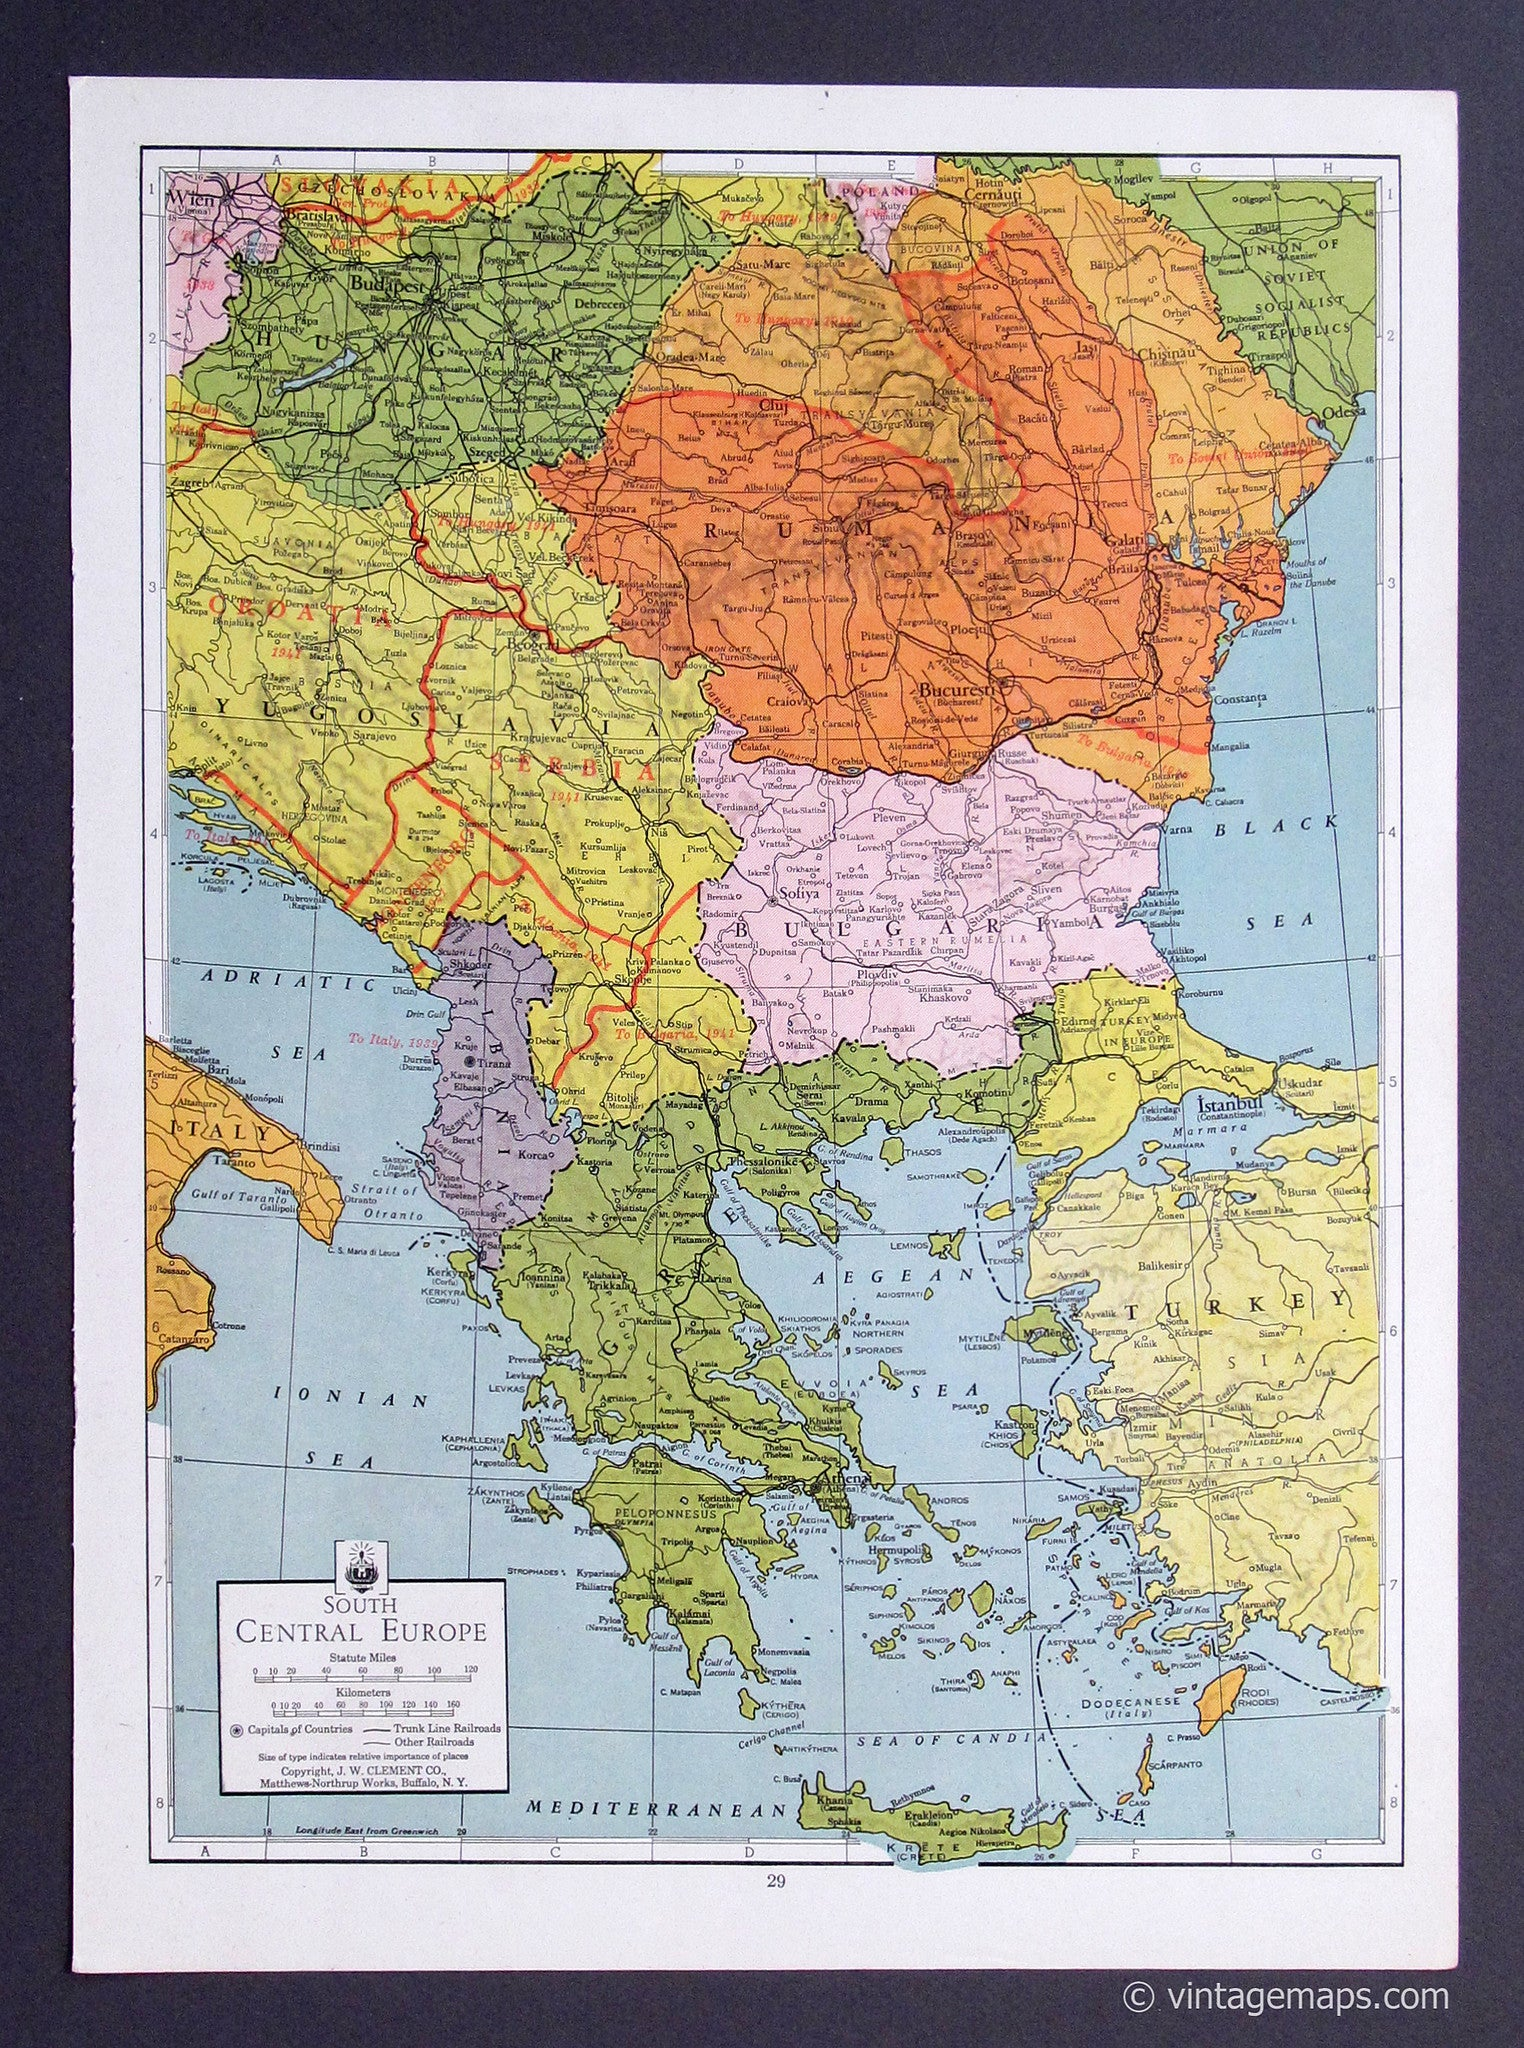 South Central Europe 1943 - Vintage Maps